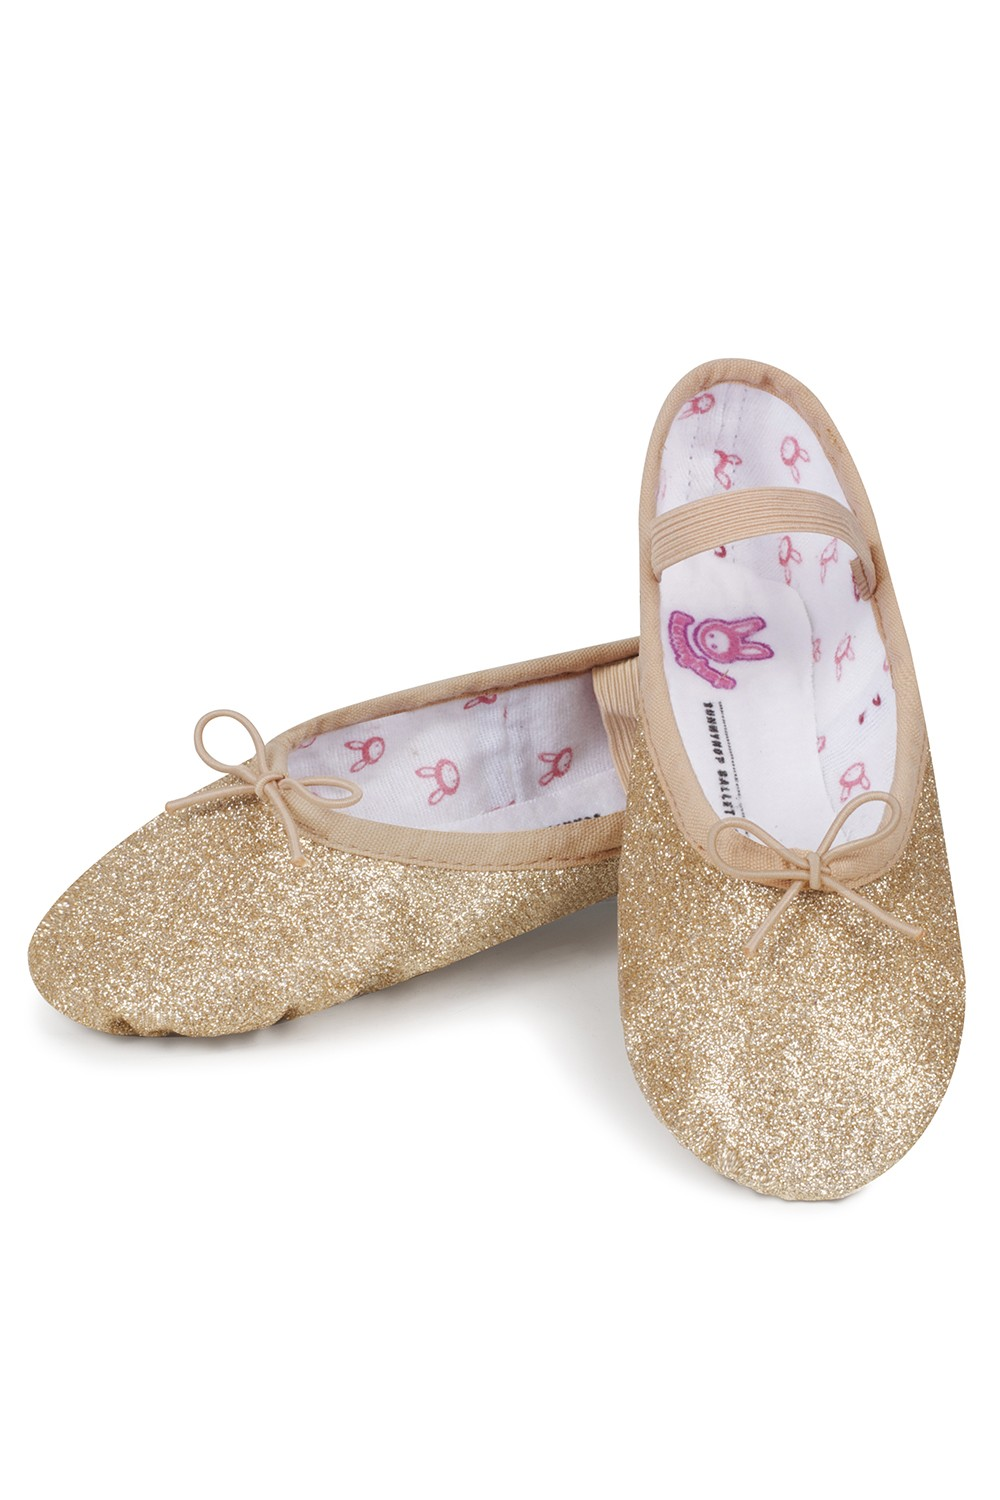 Glitterdust Girls Girl's Ballet Shoes